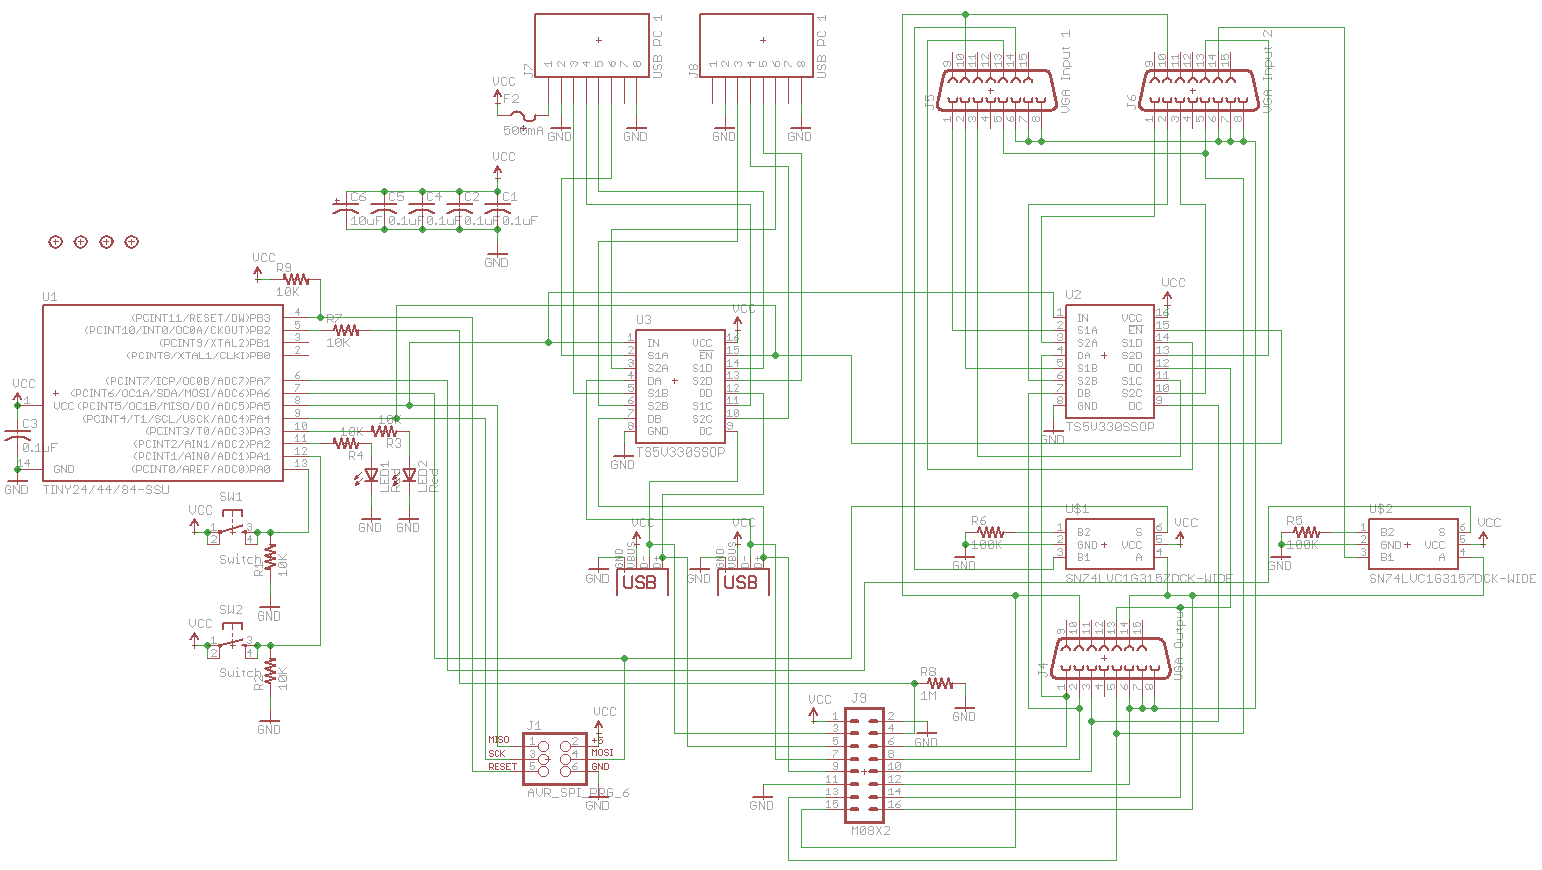 apc kvm diagram schematic all about repair and wiring collections apc kvm diagram schematic kvm switch wiring diagram wiring diagram blog kvm3 1 kvm switch